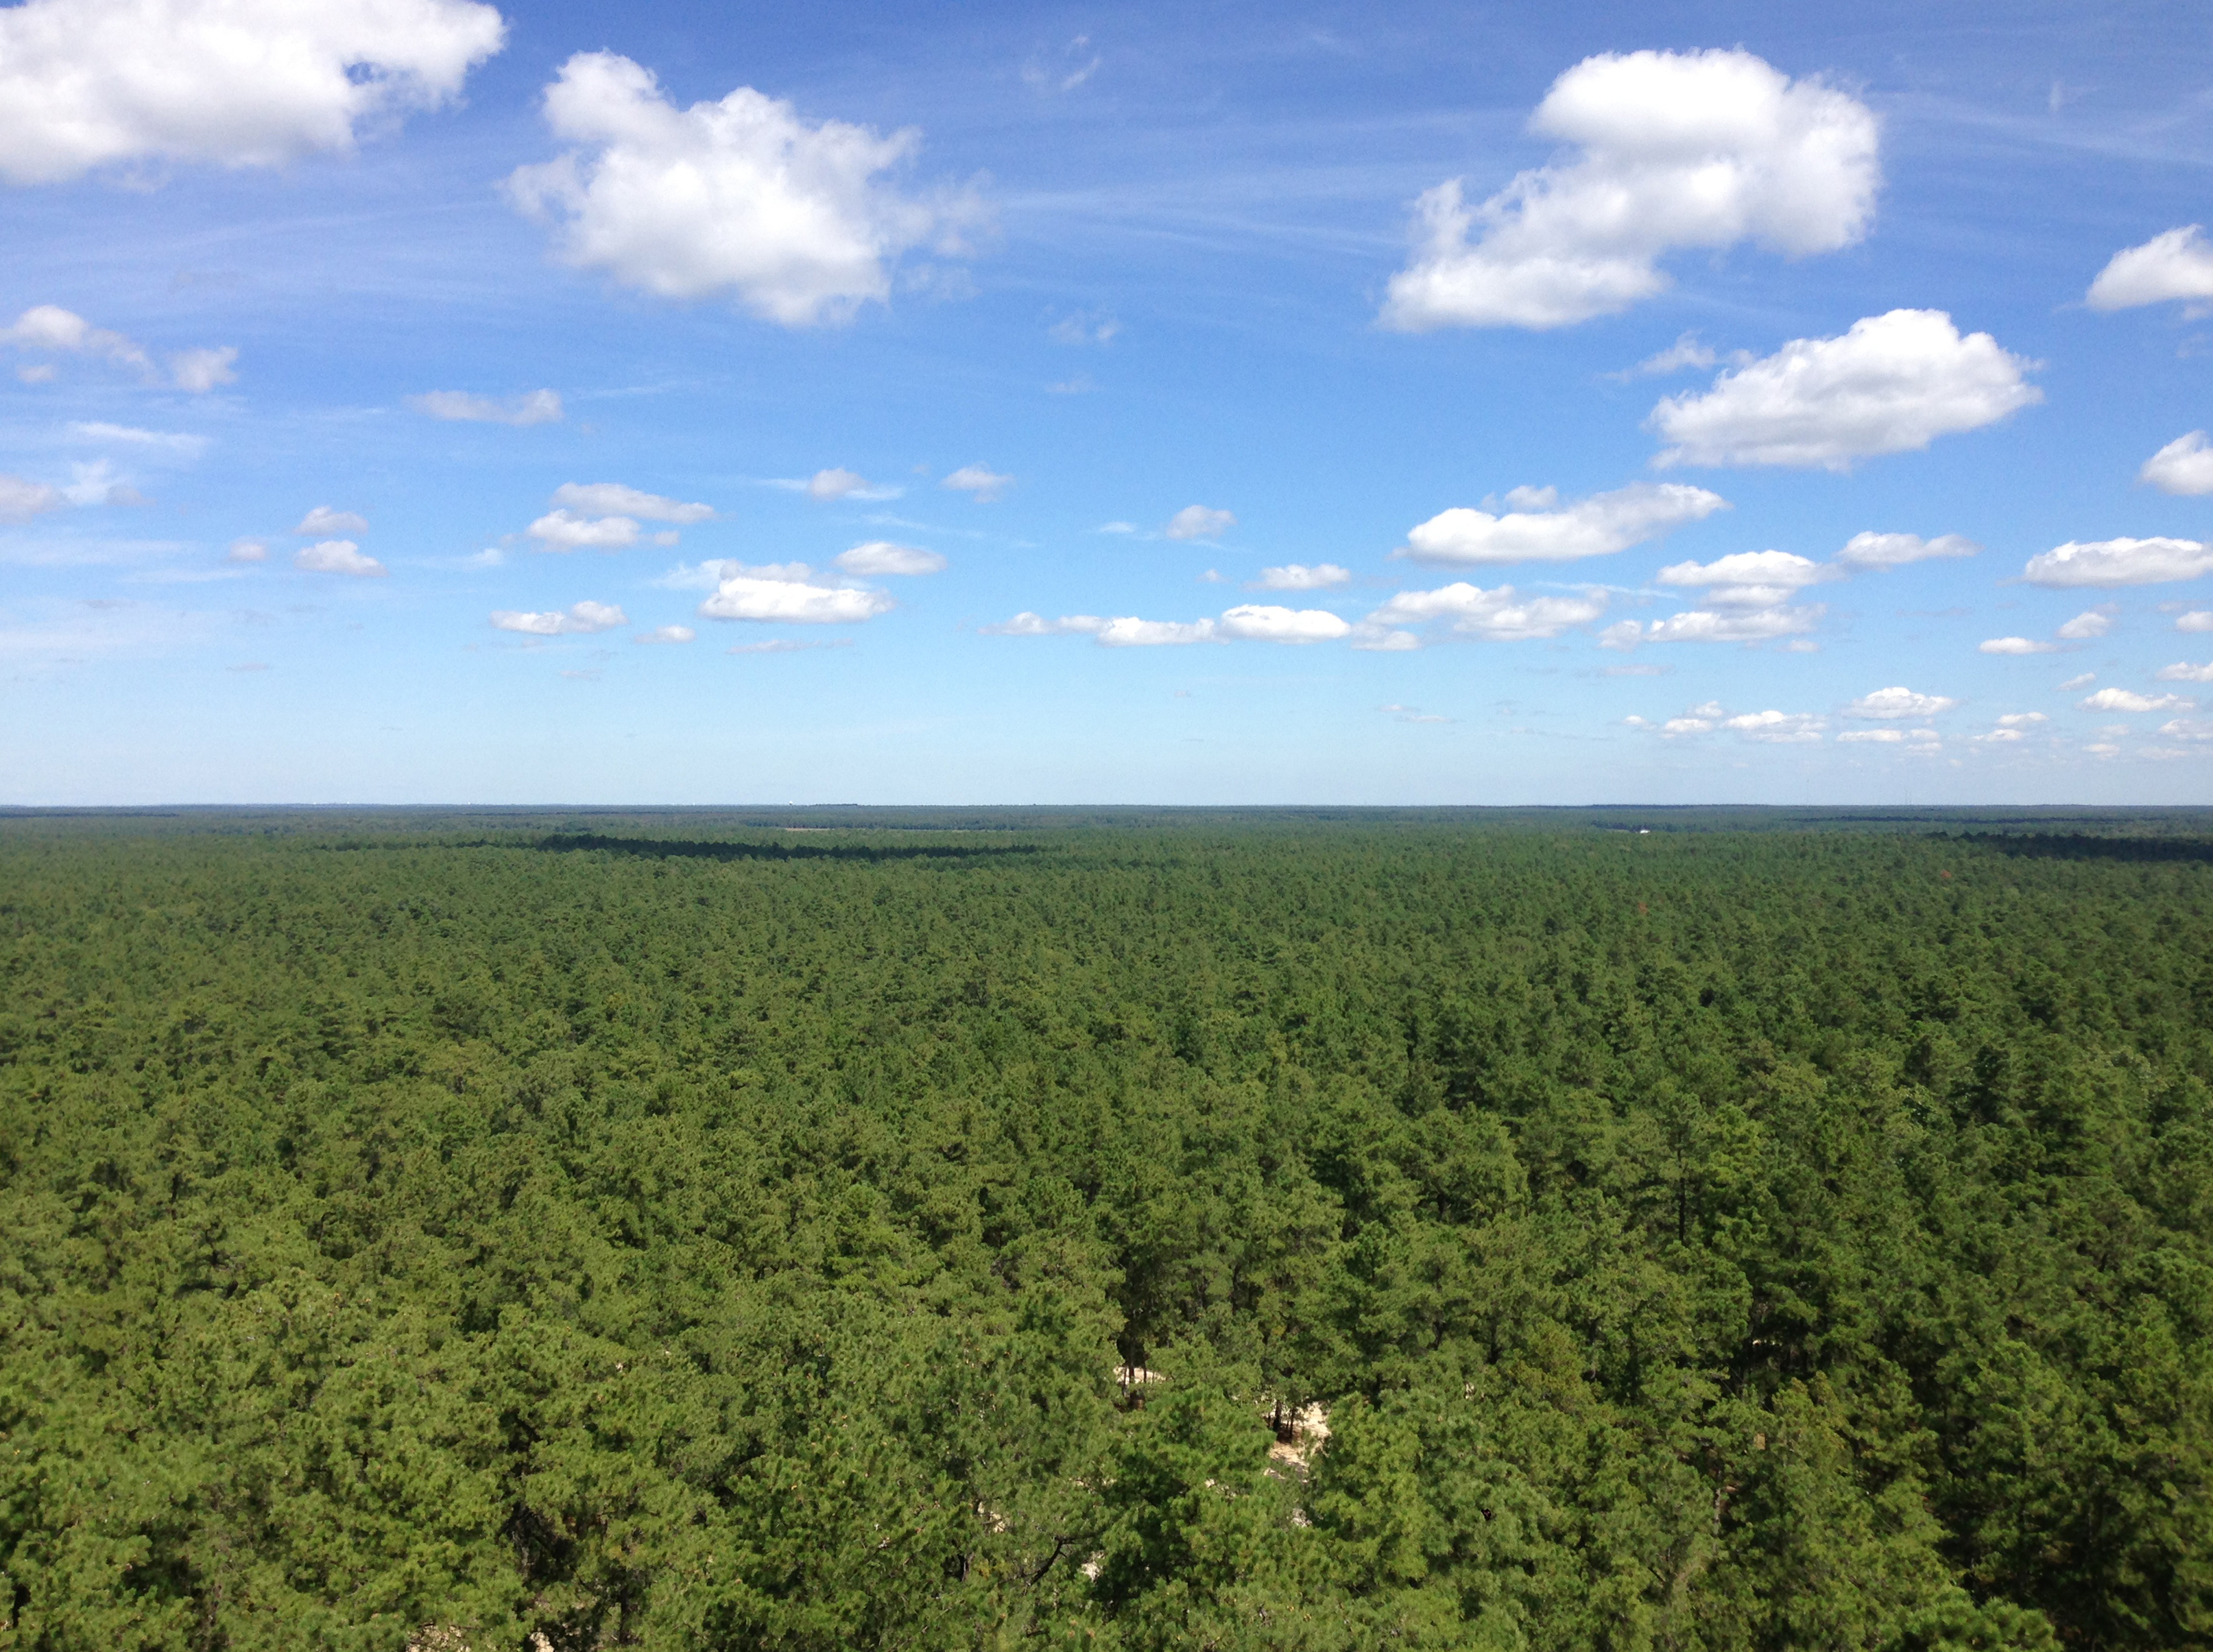 Apple Pie >> File:2014-08-29 12 01 24 View north from the fire tower on Apple Pie Hill in Wharton State ...